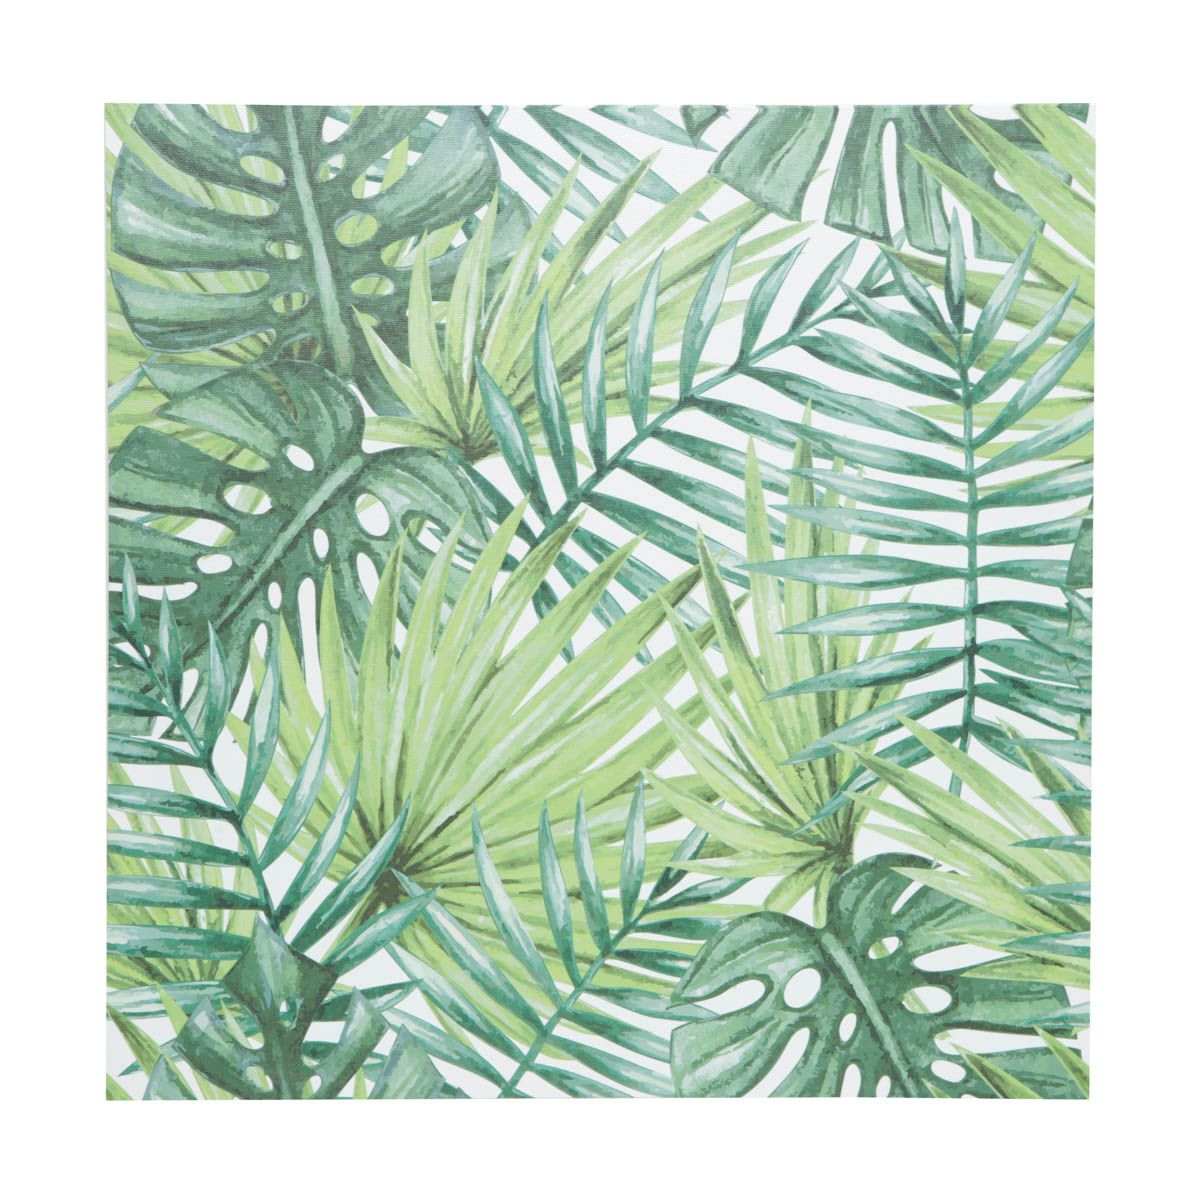 Quadro Decorativo Palm Tree Leaves 40cm x 40cm - 40976